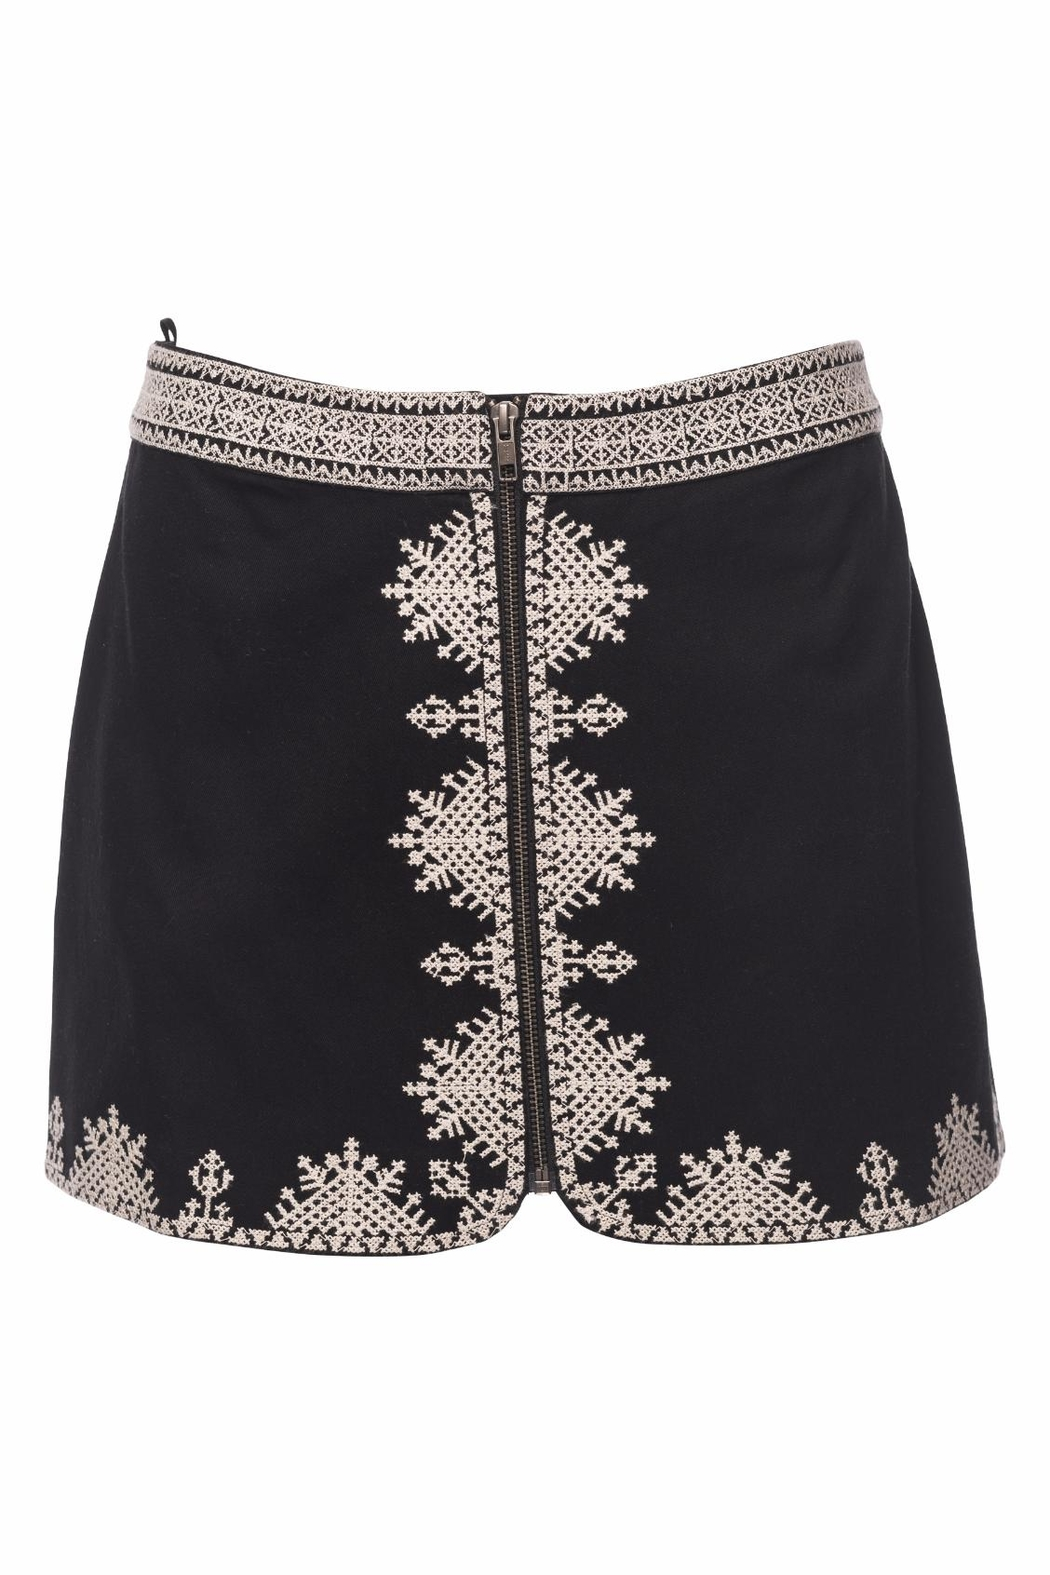 Joie Genovefa Skirt Embroidered - Main Image